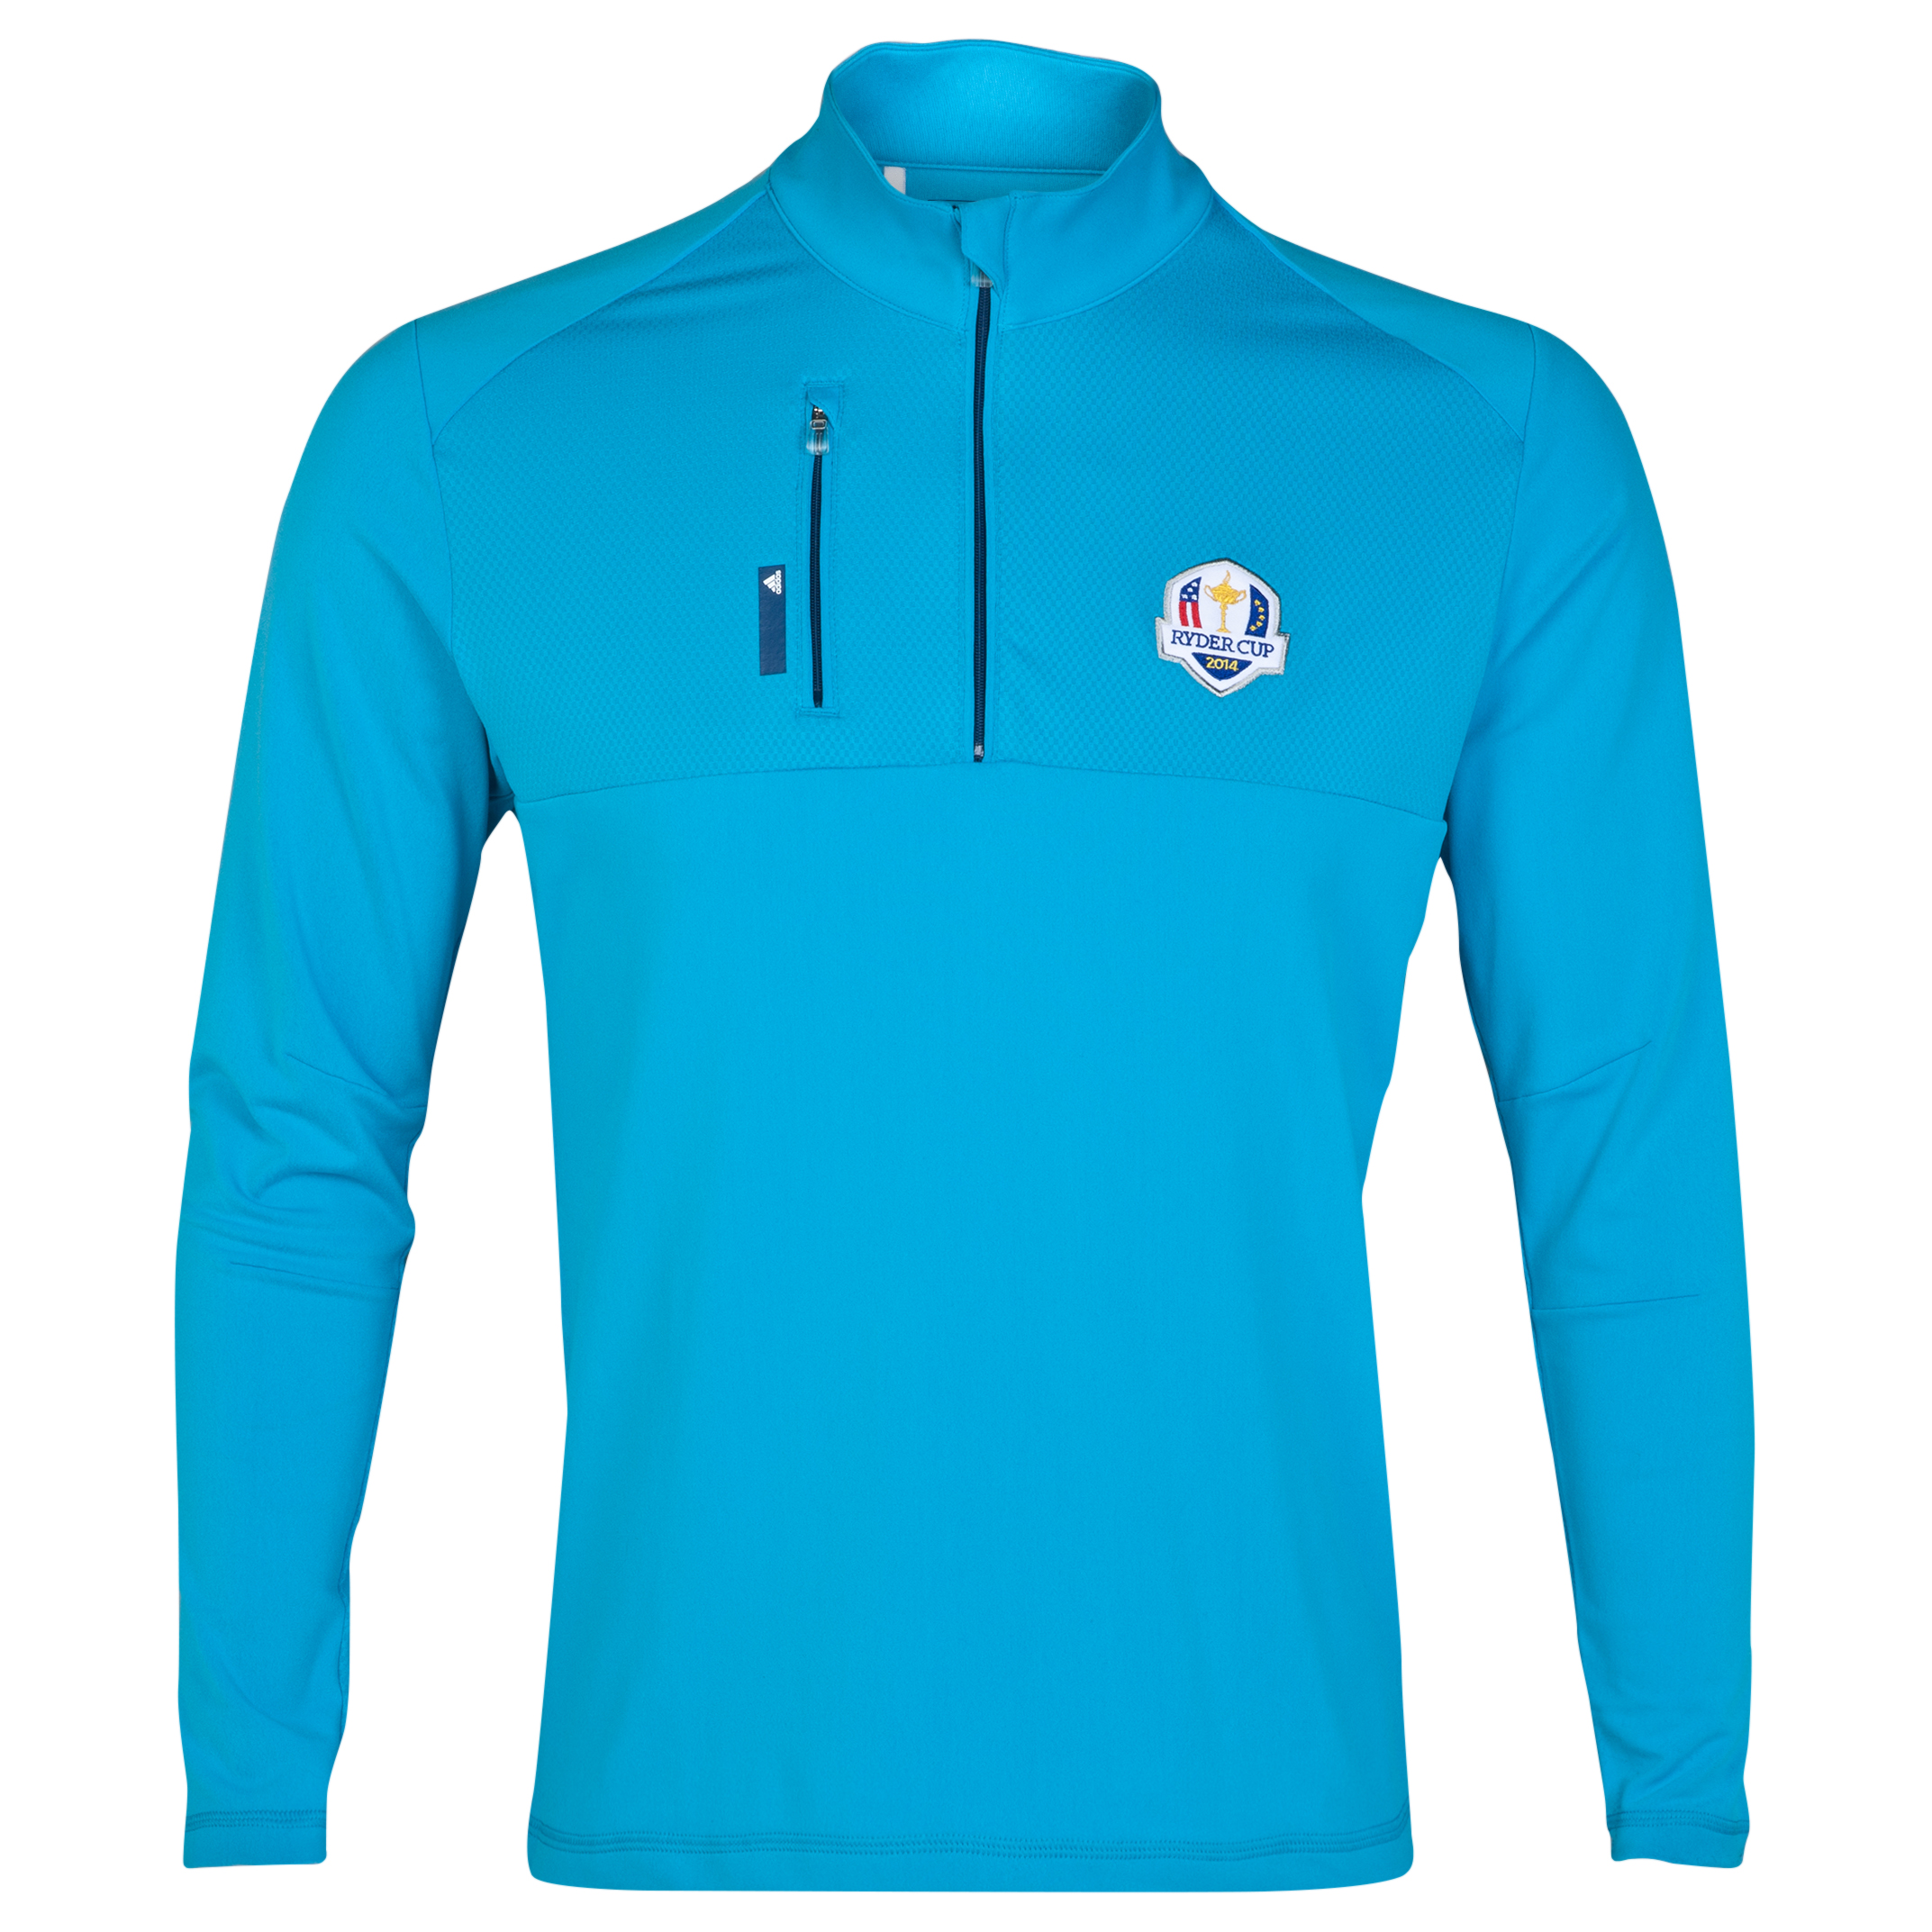 The 2014 Ryder Cup adidas ClimaLite Mixed Media 1/4 Zip Layering Piece Sky Blue